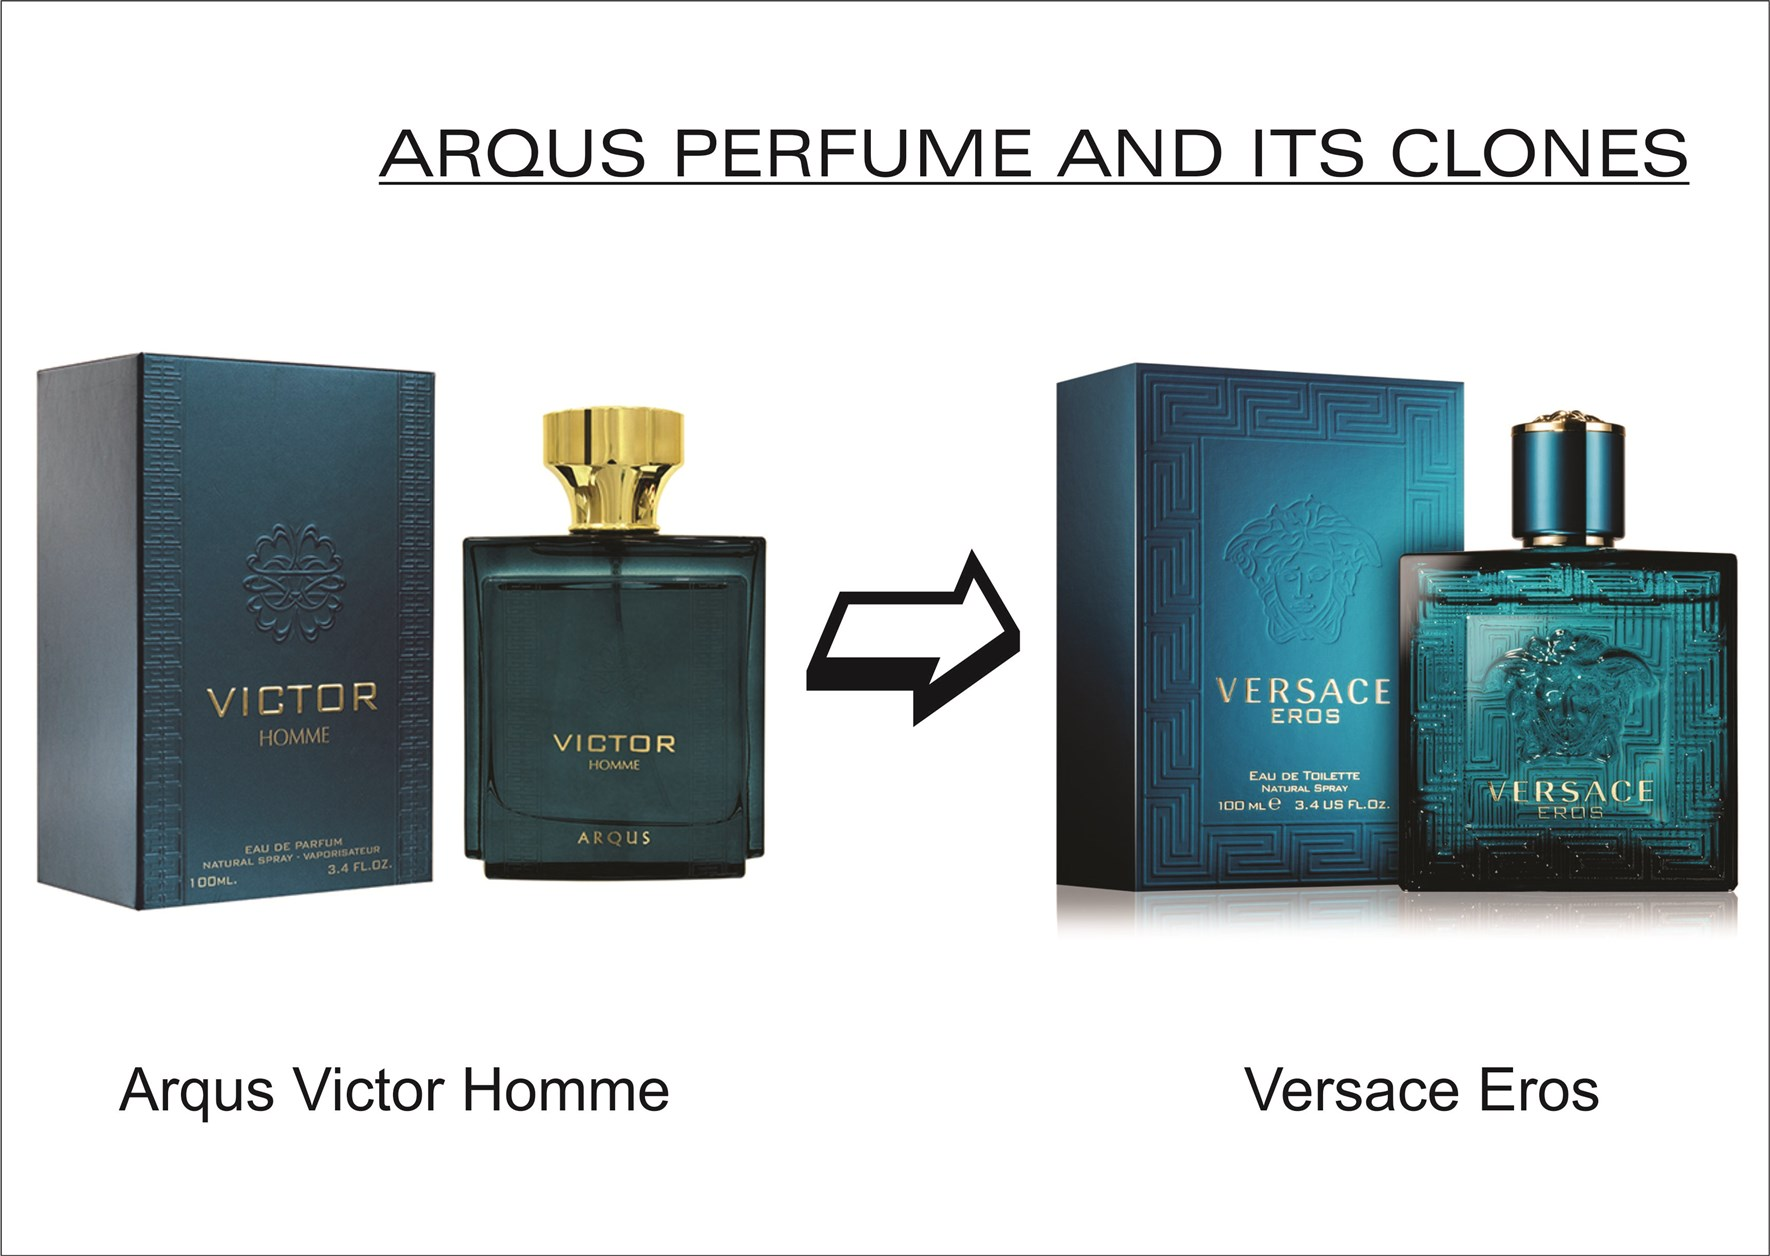 arqus-victor-homme-for-men-100-ml-edp-by-lattafa-perfumes-versace-eros-pour-homme-perfume-for-man-100-ml-edt